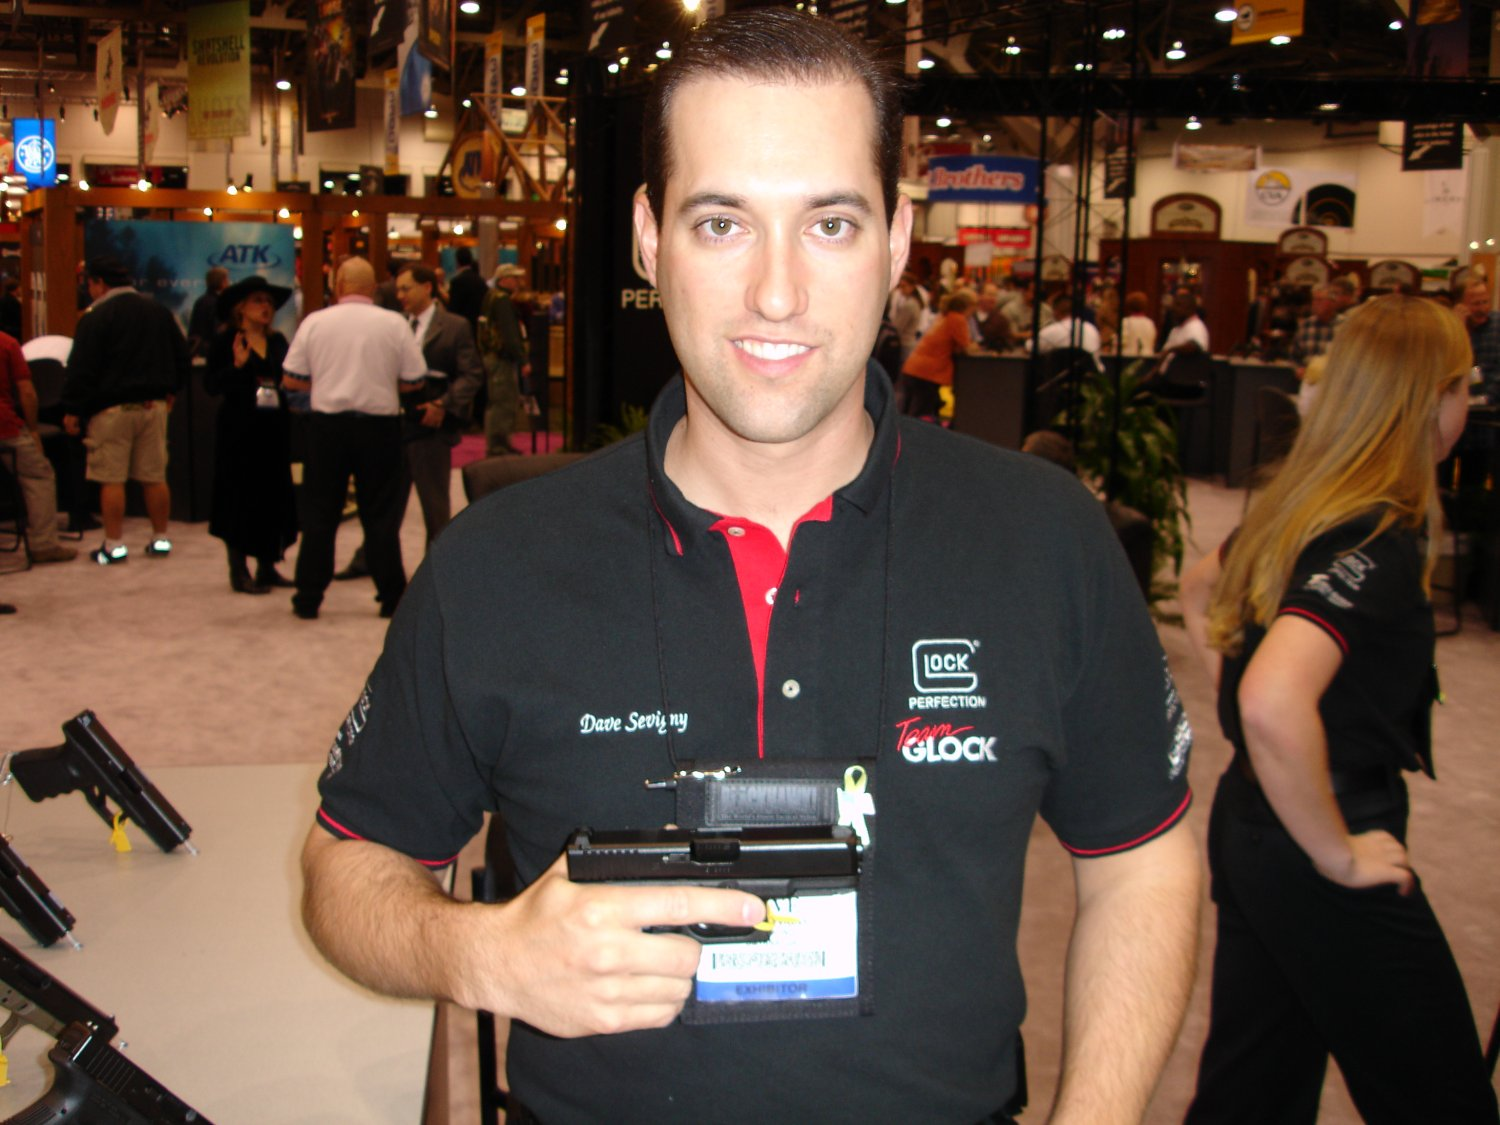 SHOTShow2005 DaveSevignywithGlock38 1 <!  :en  >Glock 38 (G38) Compact and Glock 39 (Subcompact) Pistols & Tactical Light/Laser<!  :  >